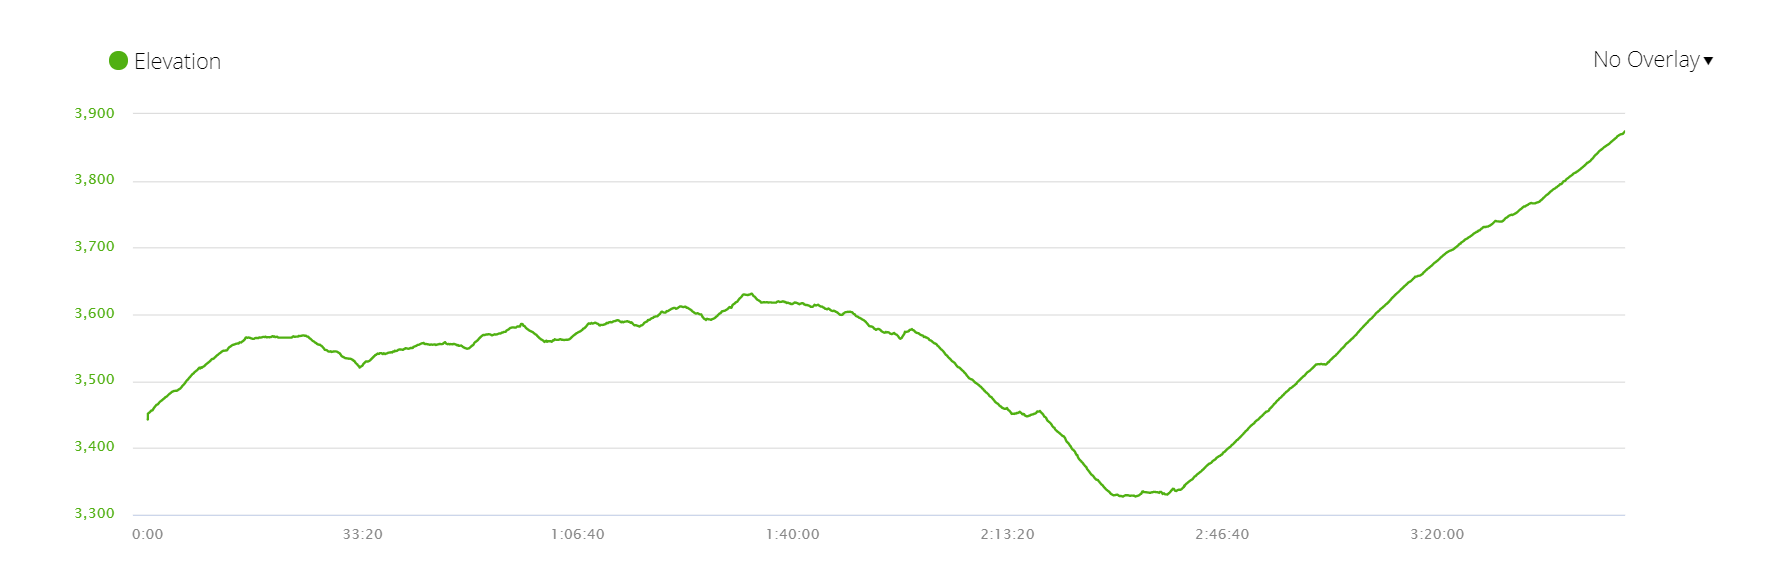 Elevation profile of Day 4 of Everest Base Camp trek